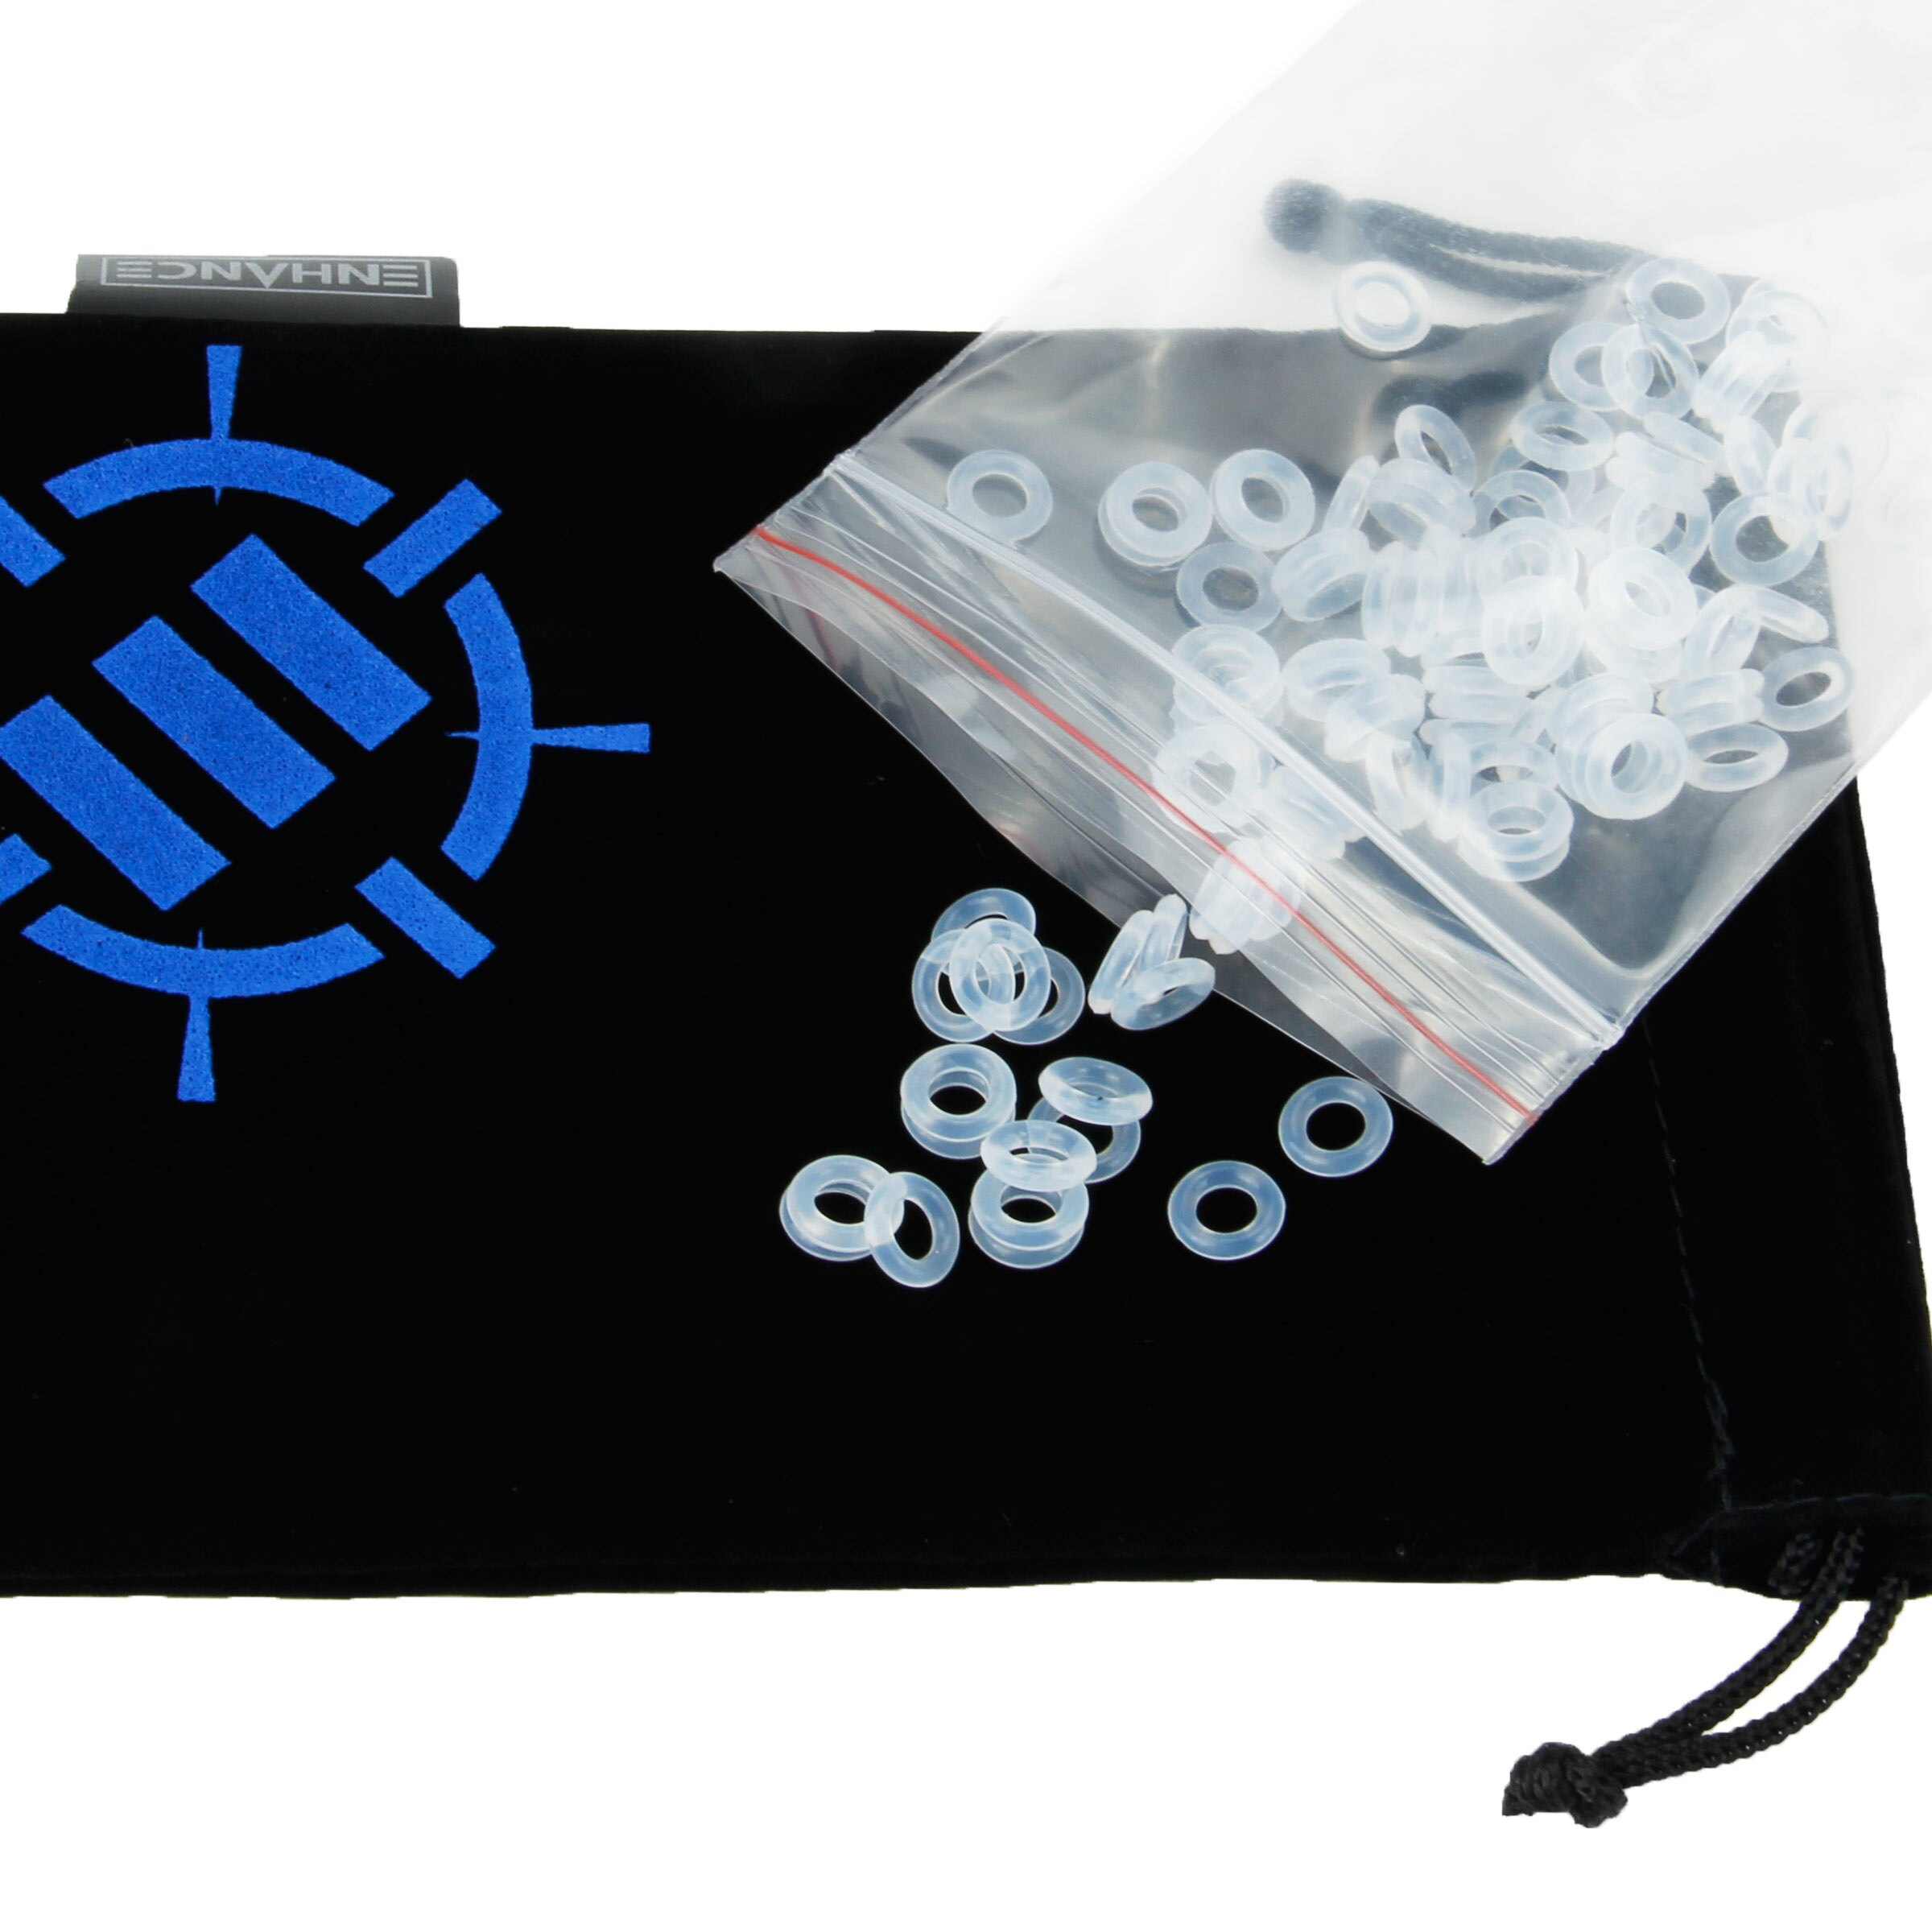 ENHANCE Mechanical Keyboard Modification Kit with Clear O-Ring Switch Dampeners & Keycap Puller 1